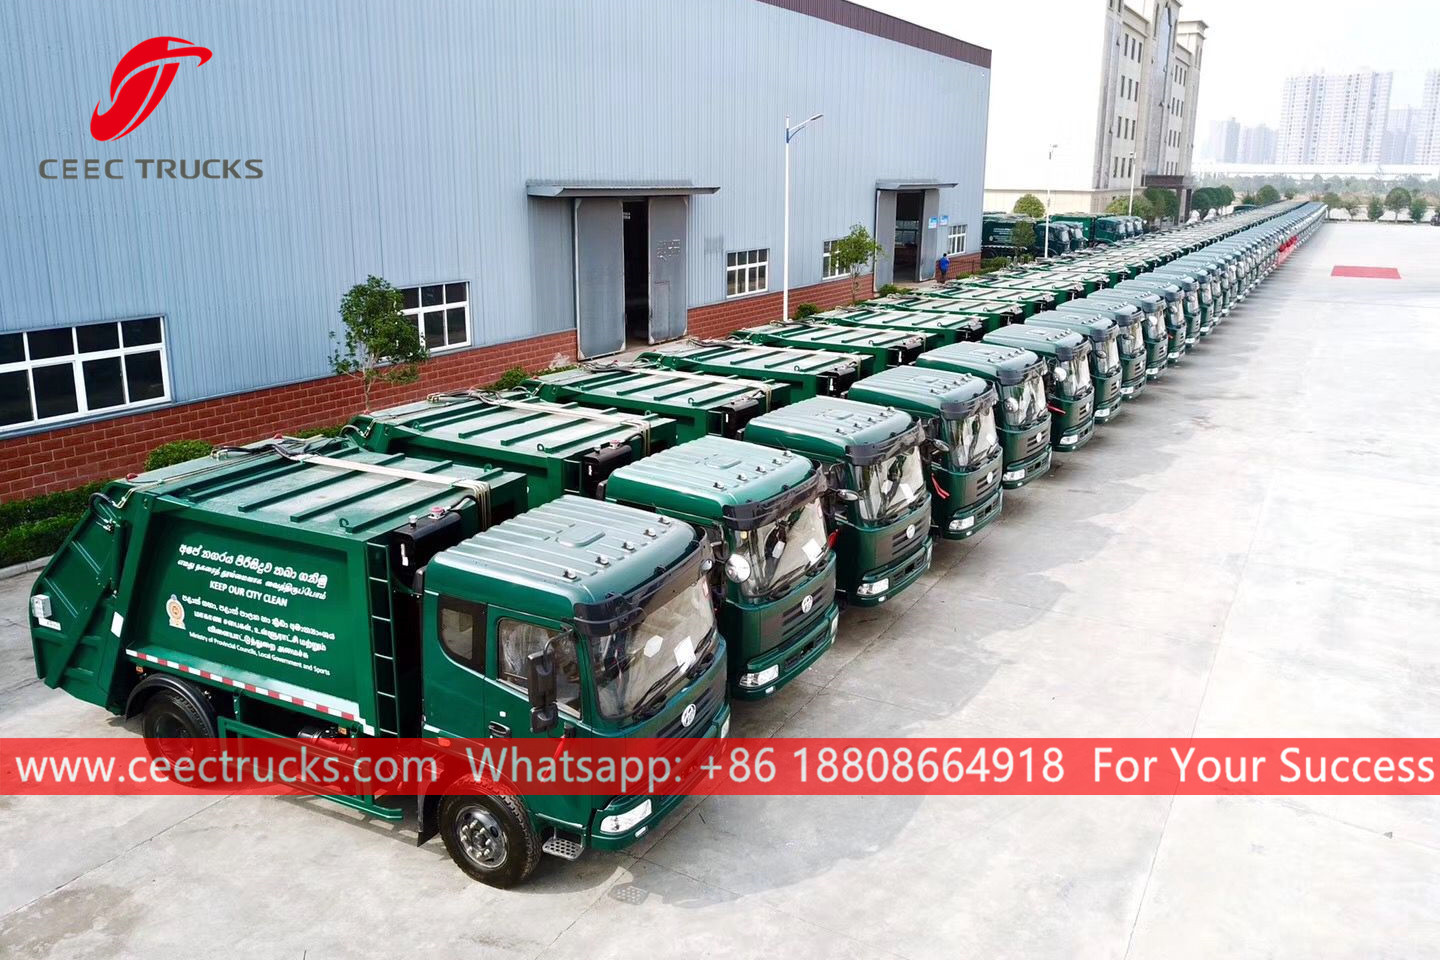 50 units rear loaders were exported